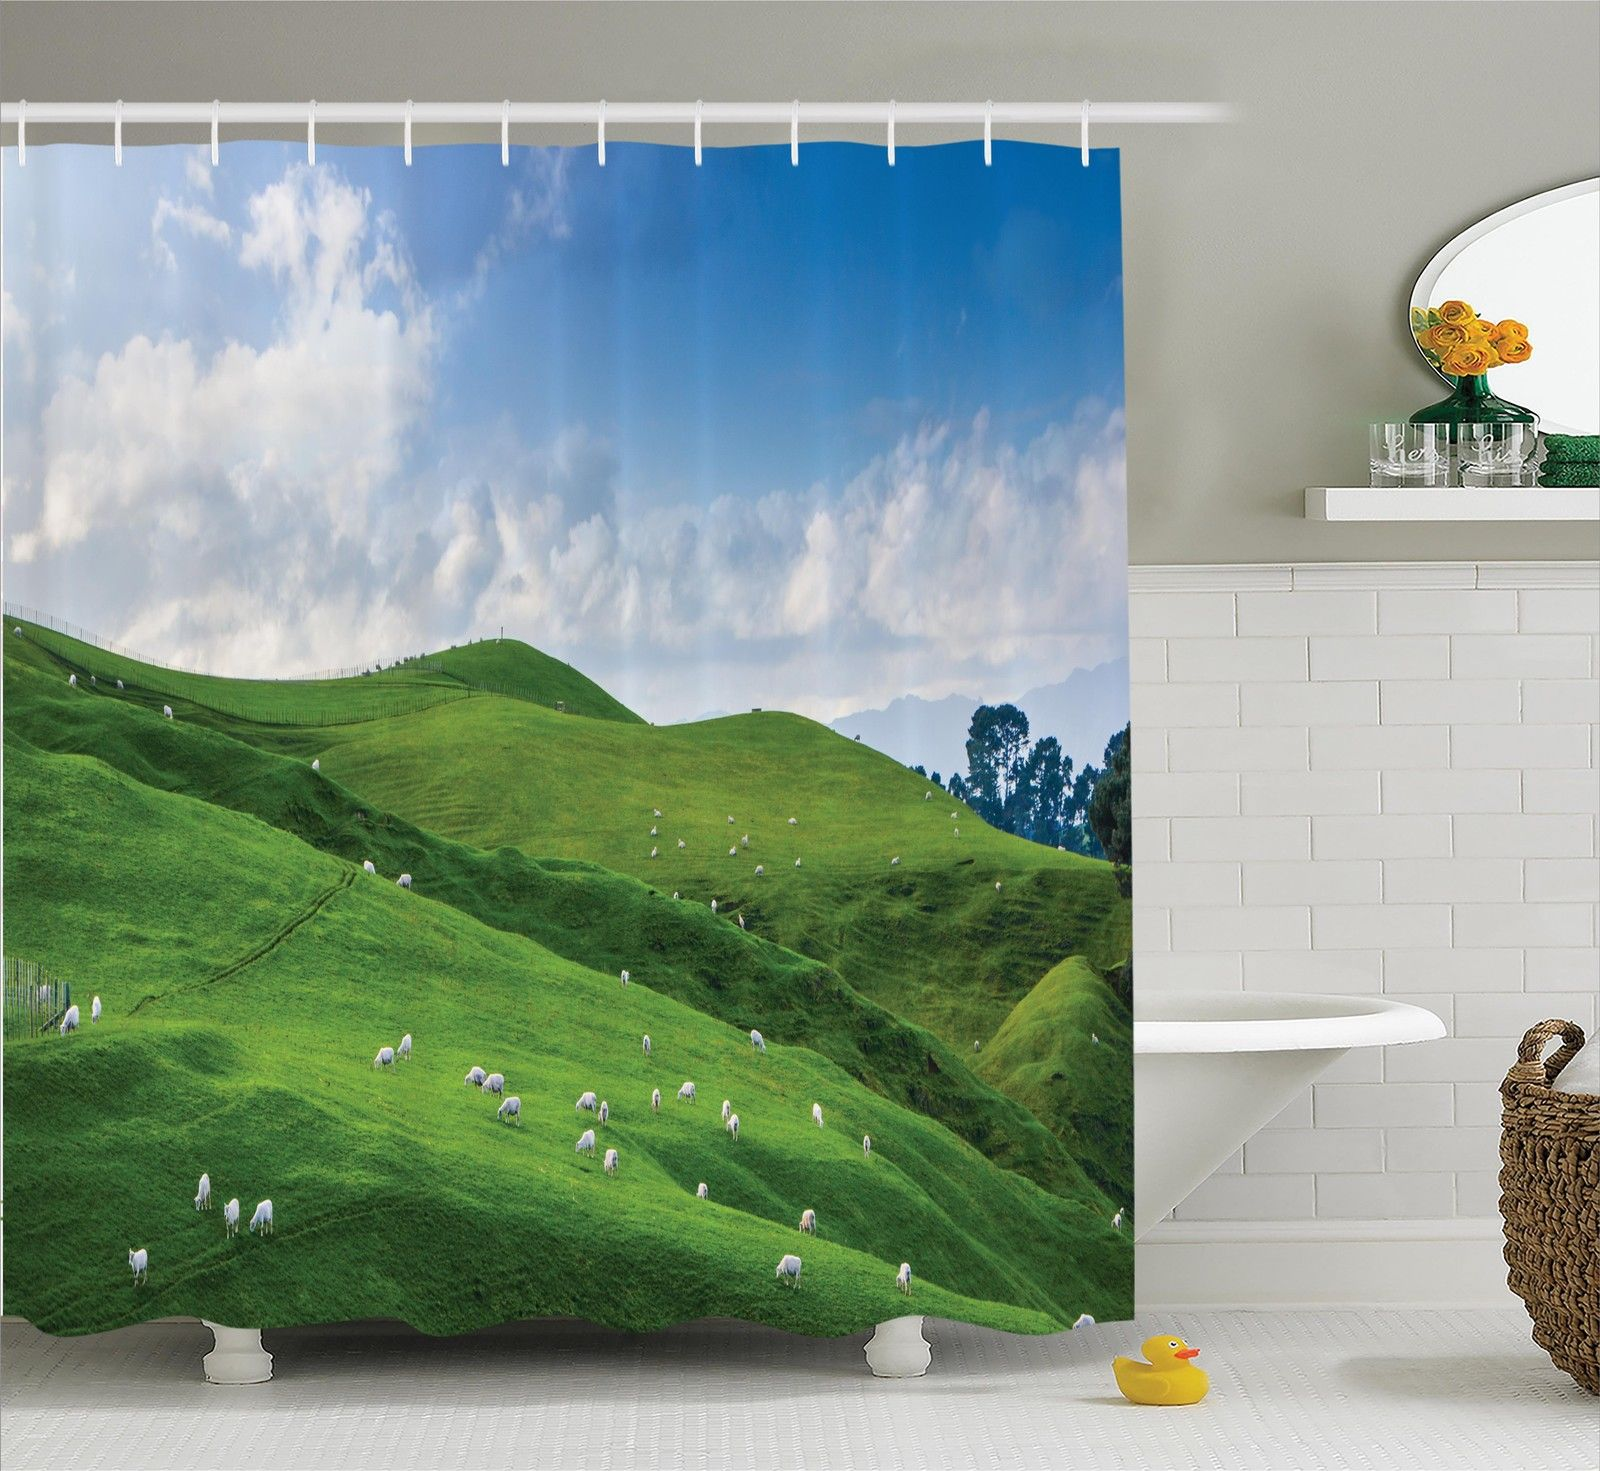 Farm House Decor Shower Curtain Set, Sheep Under Blue Sky Trees Grassland Highland Nature Landscape Scenery Picture, Bathroom Accessories, 69W X 70L Inches, By Ambesonne